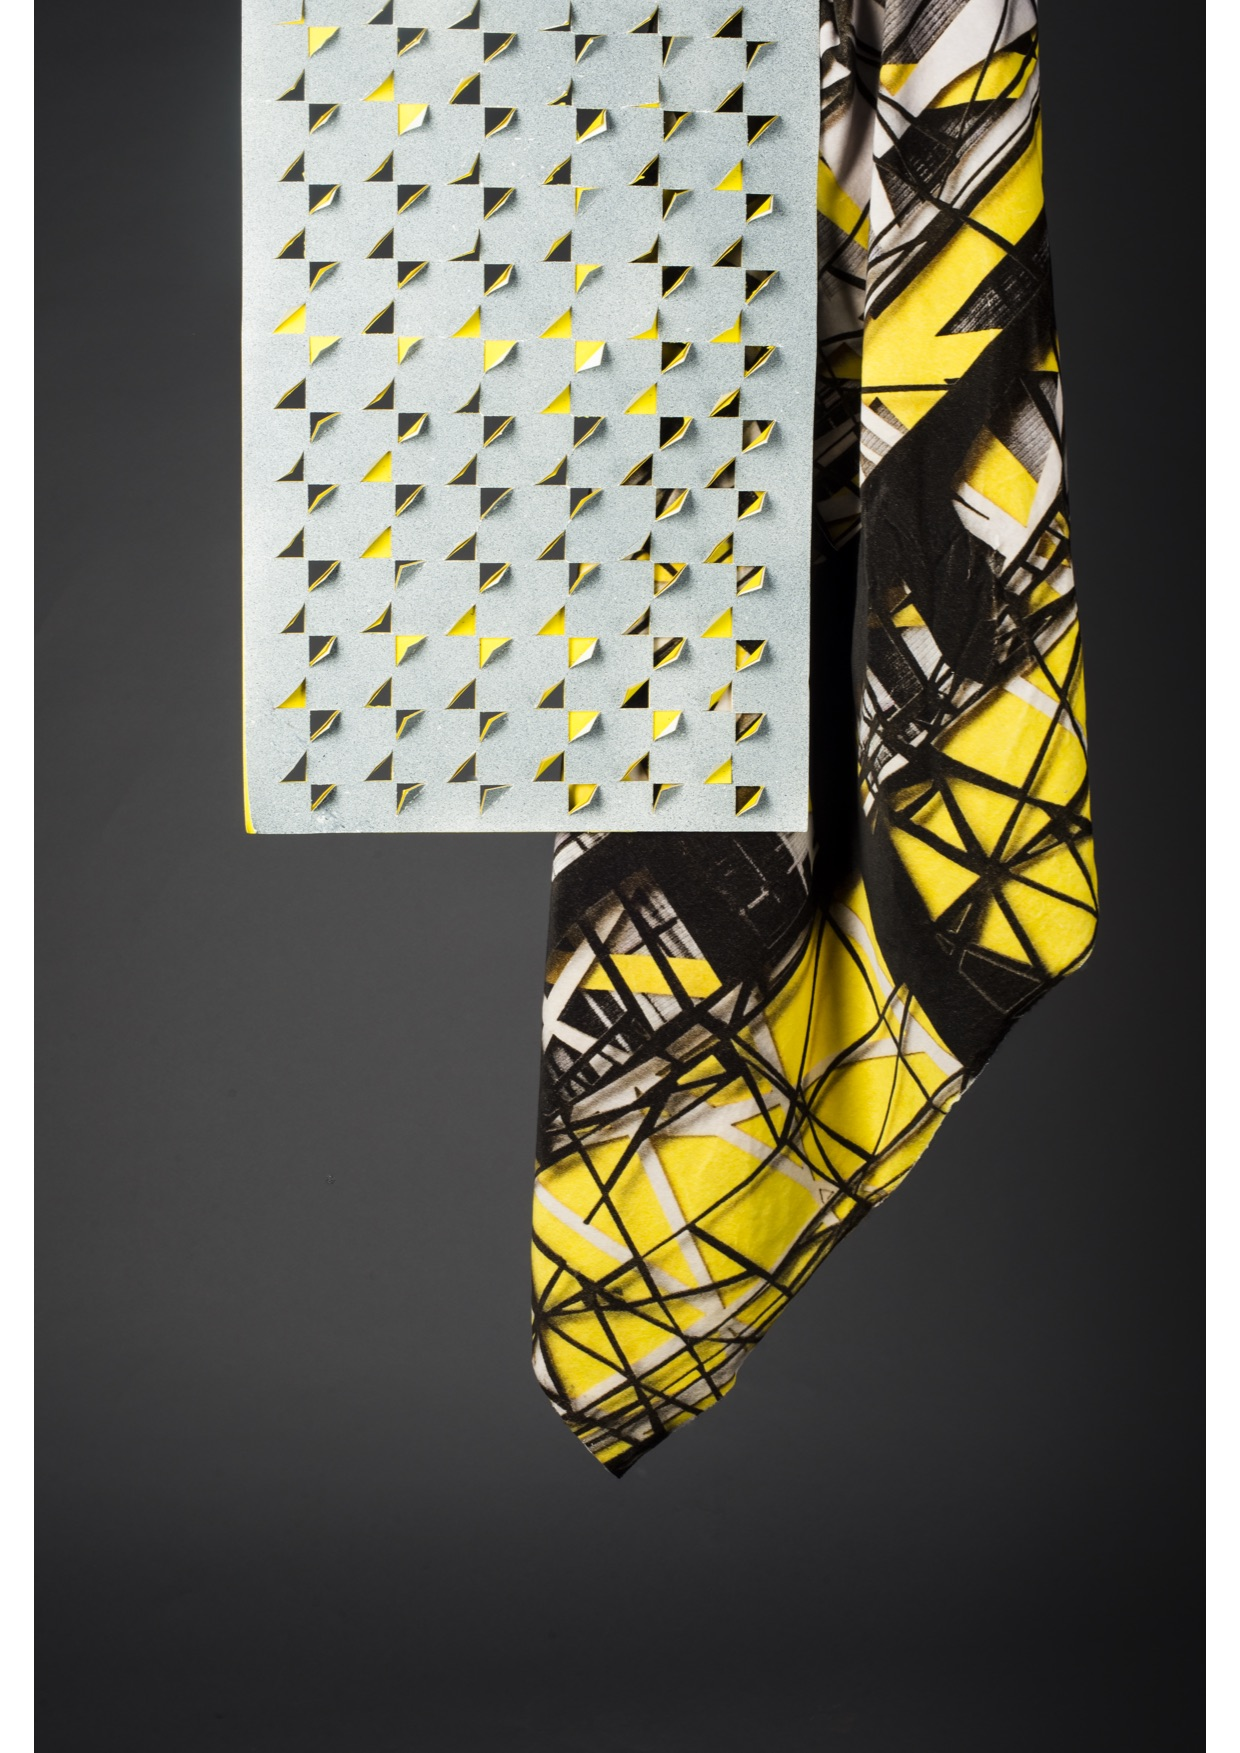 Laser Cut Wall Panell | Digital Print, Velvet